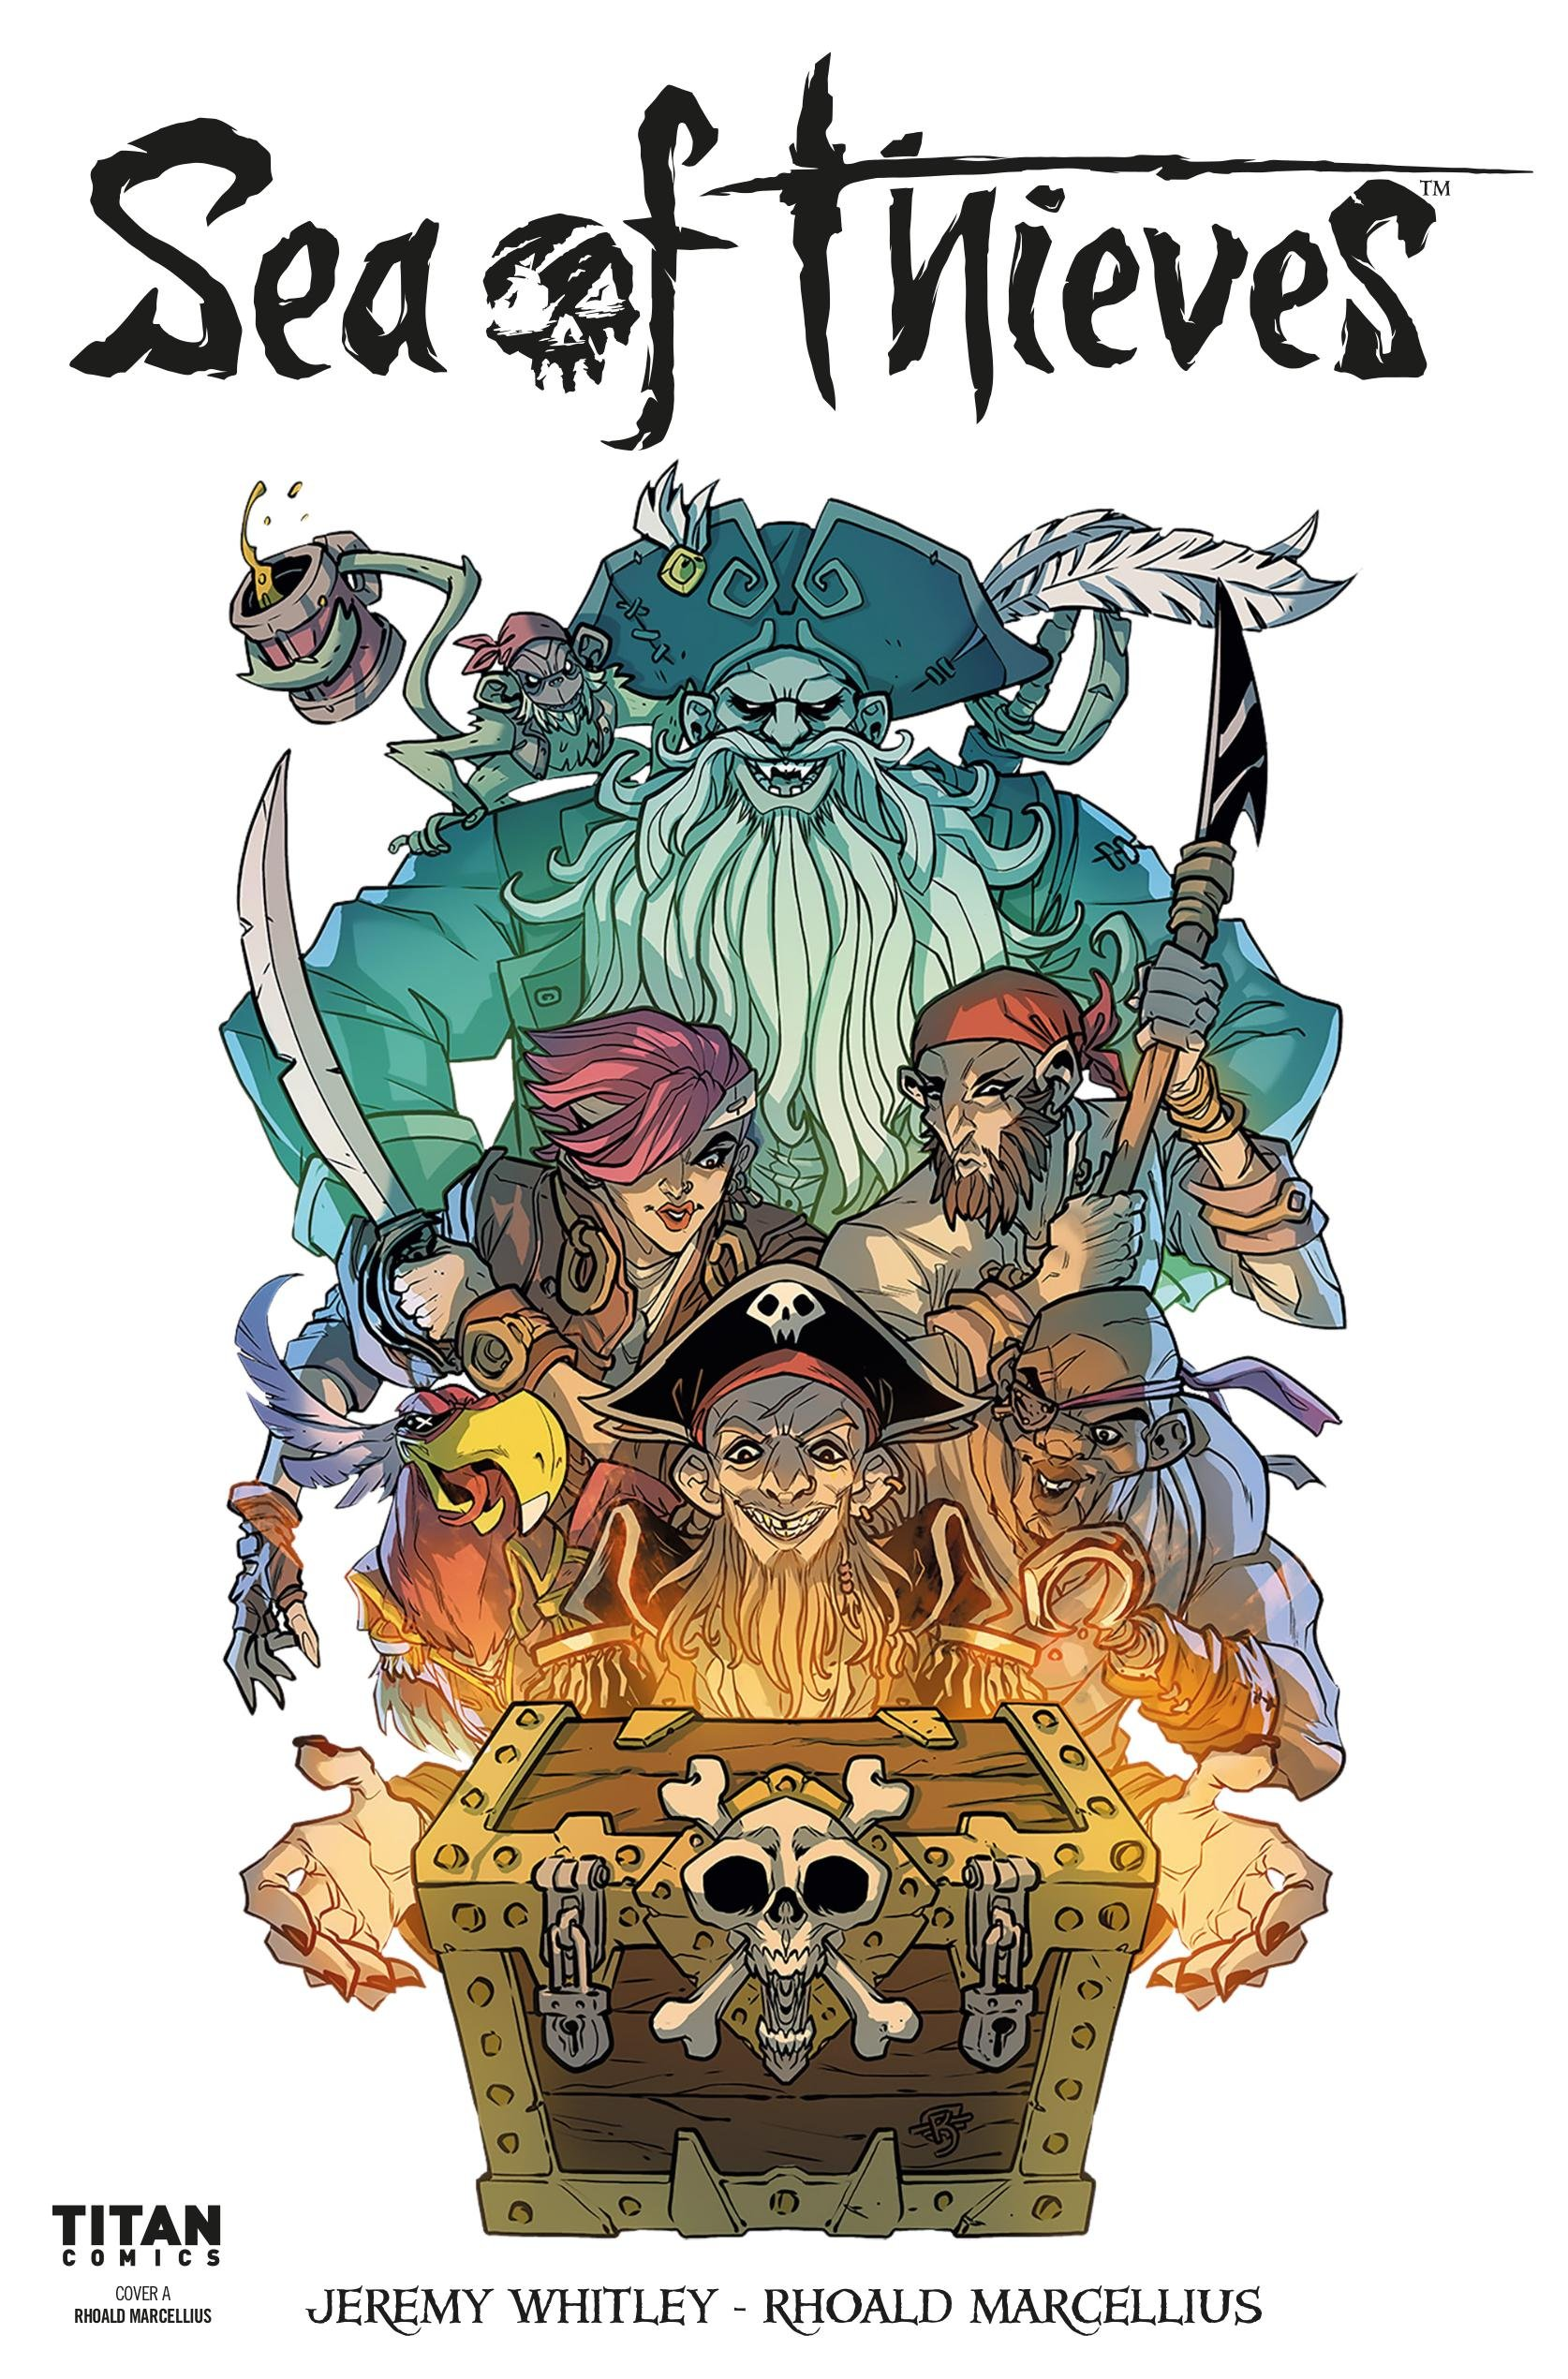 Sea of Thieves 01 (April 2018) (cover a)